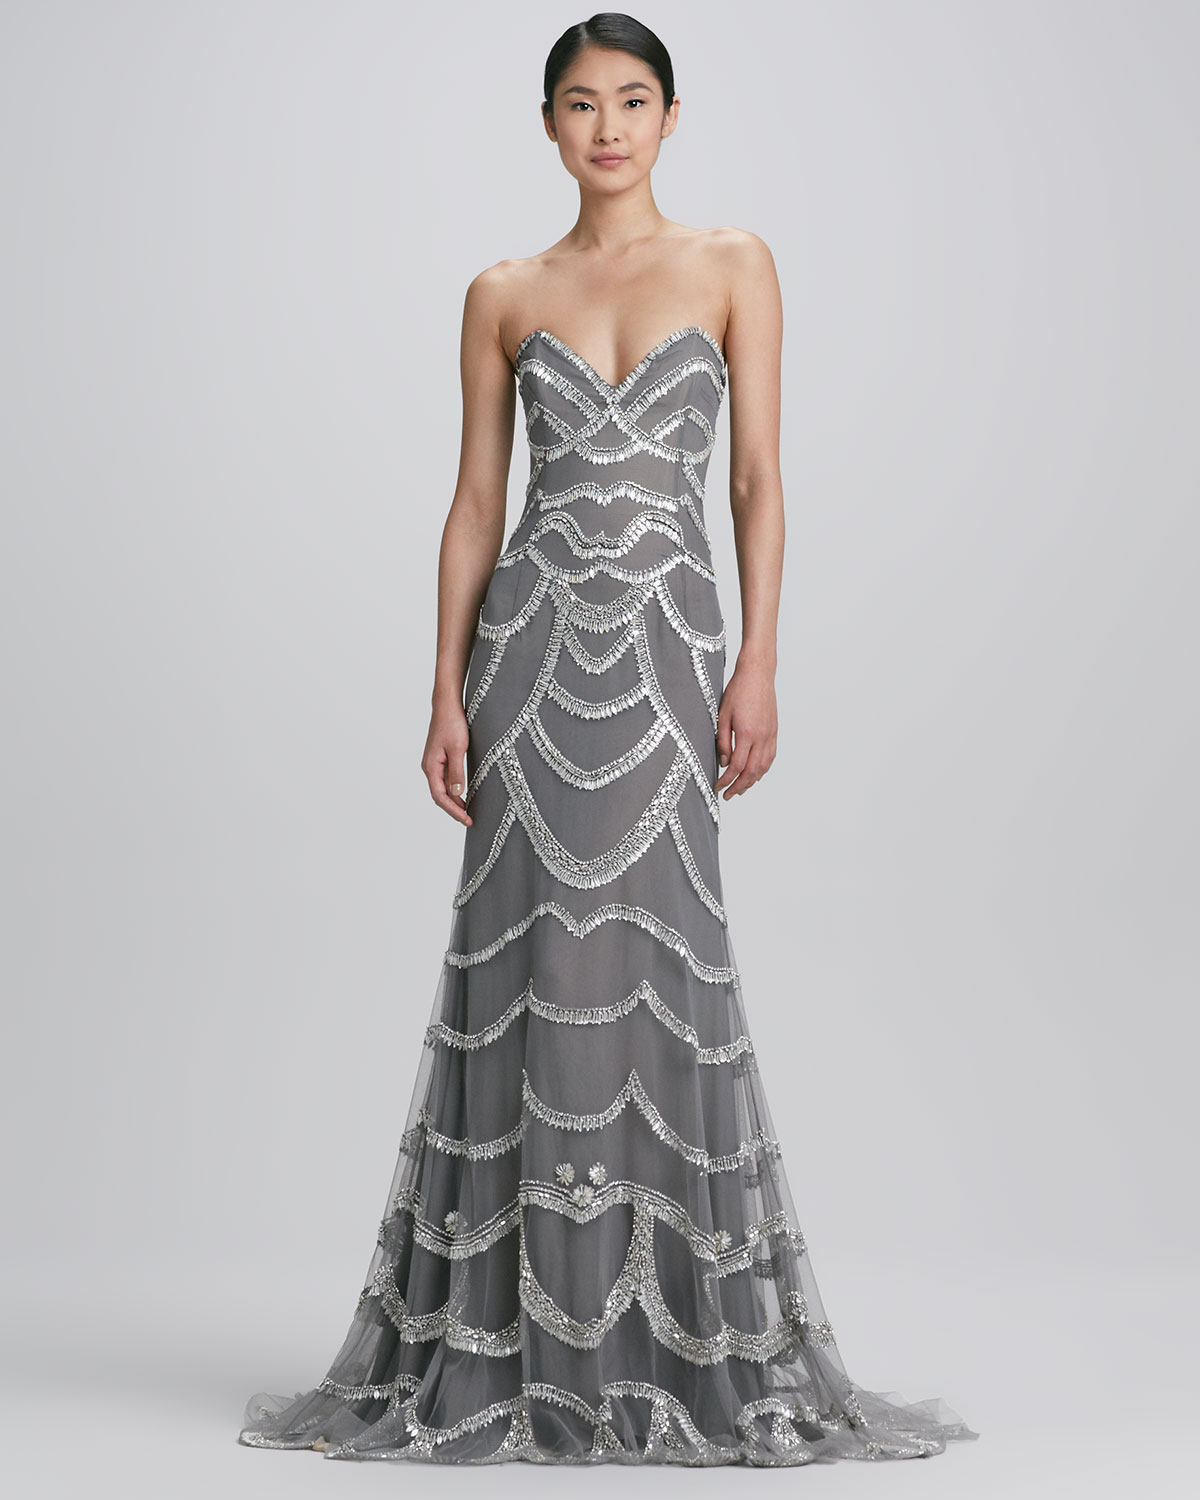 Lyst - Naeem Khan Beaded Strapless Gown in Metallic